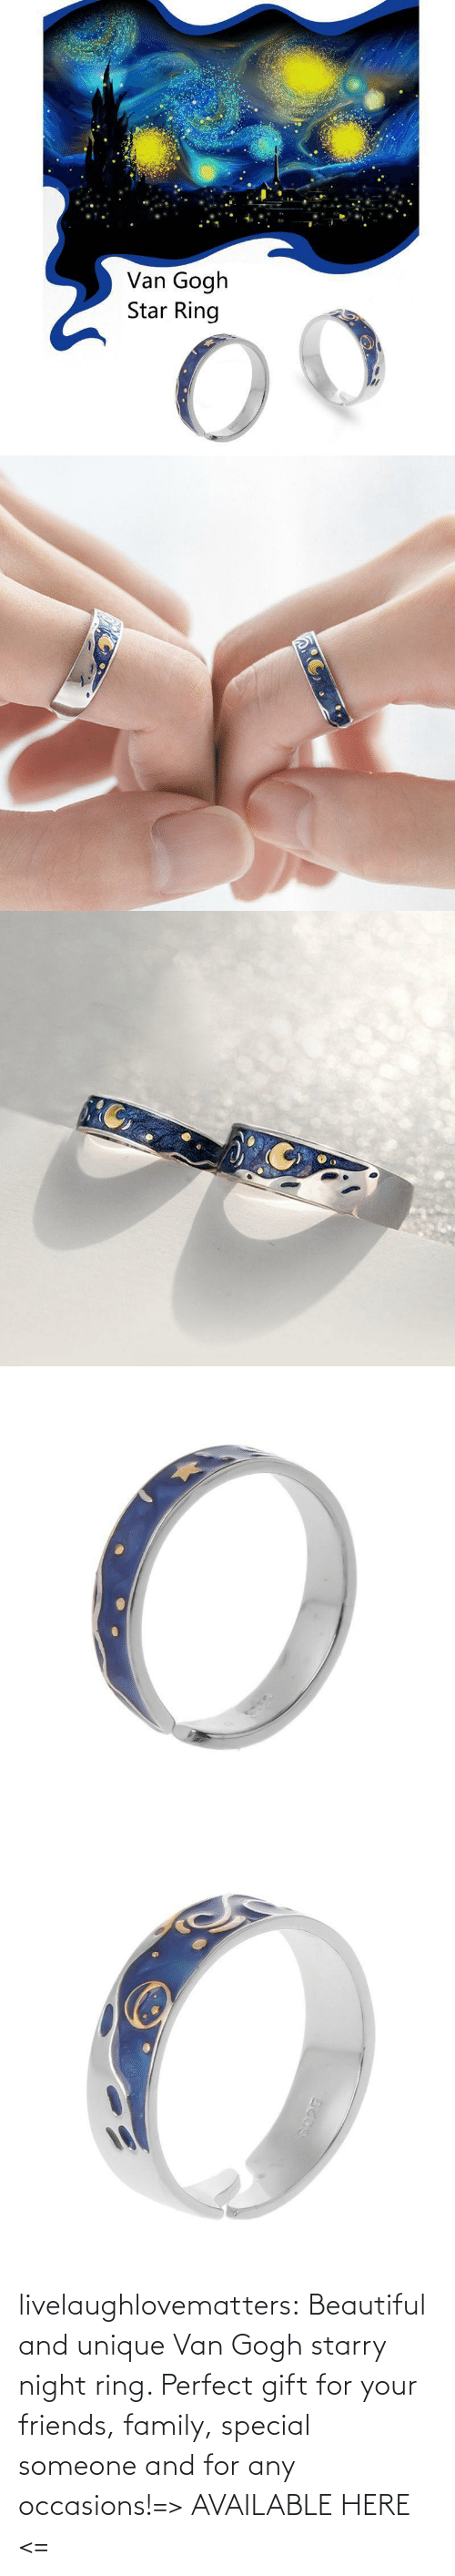 van: livelaughlovematters:  Beautiful and unique Van Gogh starry night ring. Perfect gift for your friends, family, special someone and for any occasions!=> AVAILABLE HERE <=